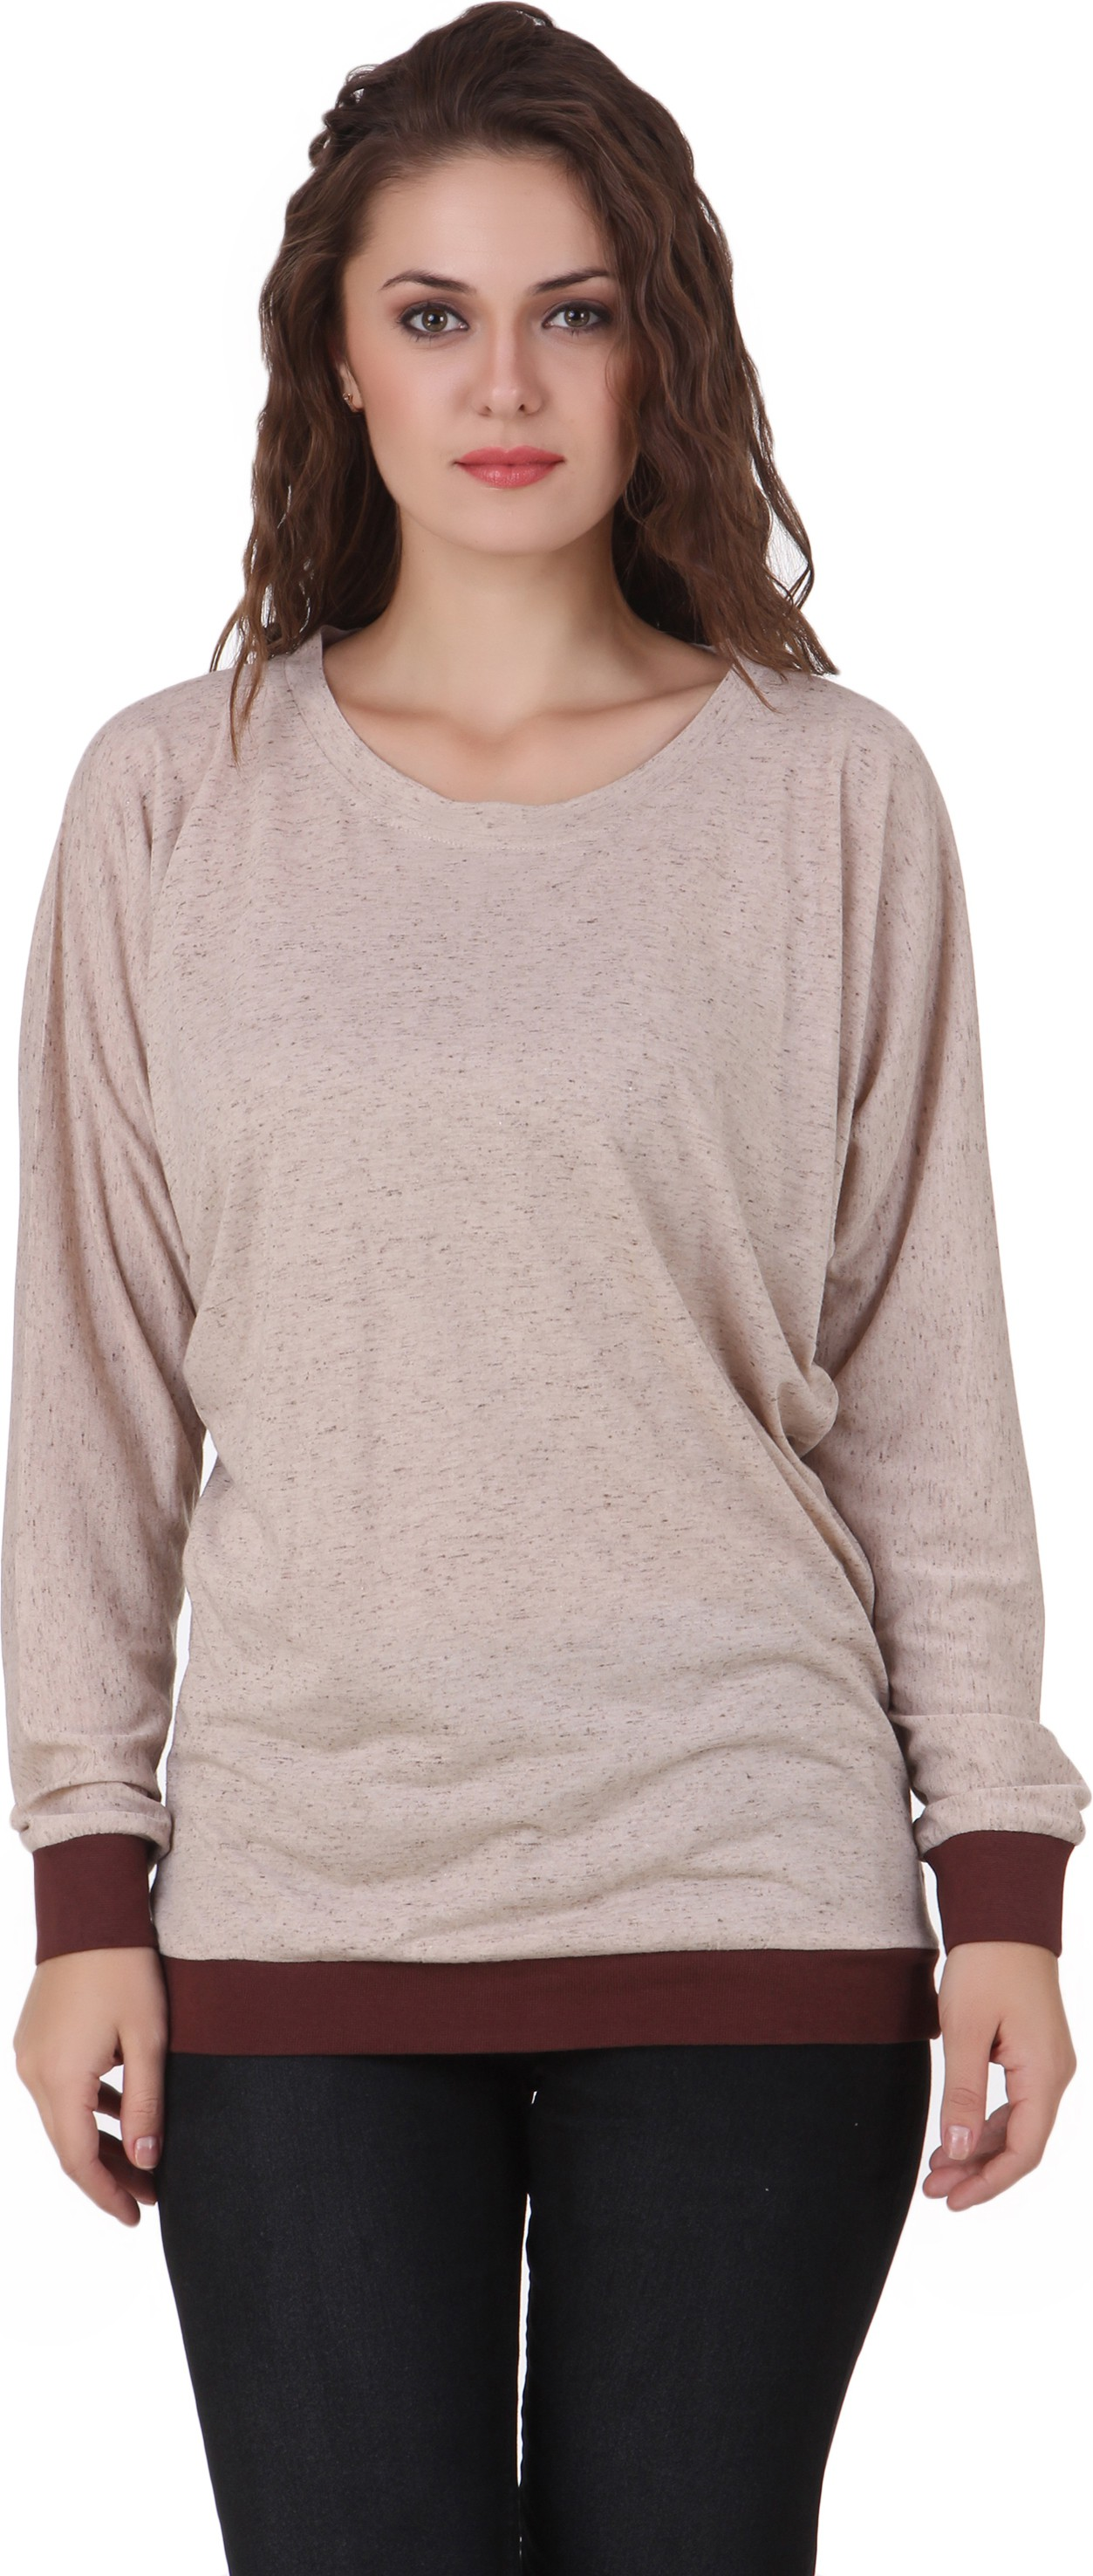 Texco Casual Full Sleeve Solid Womens Brown Top